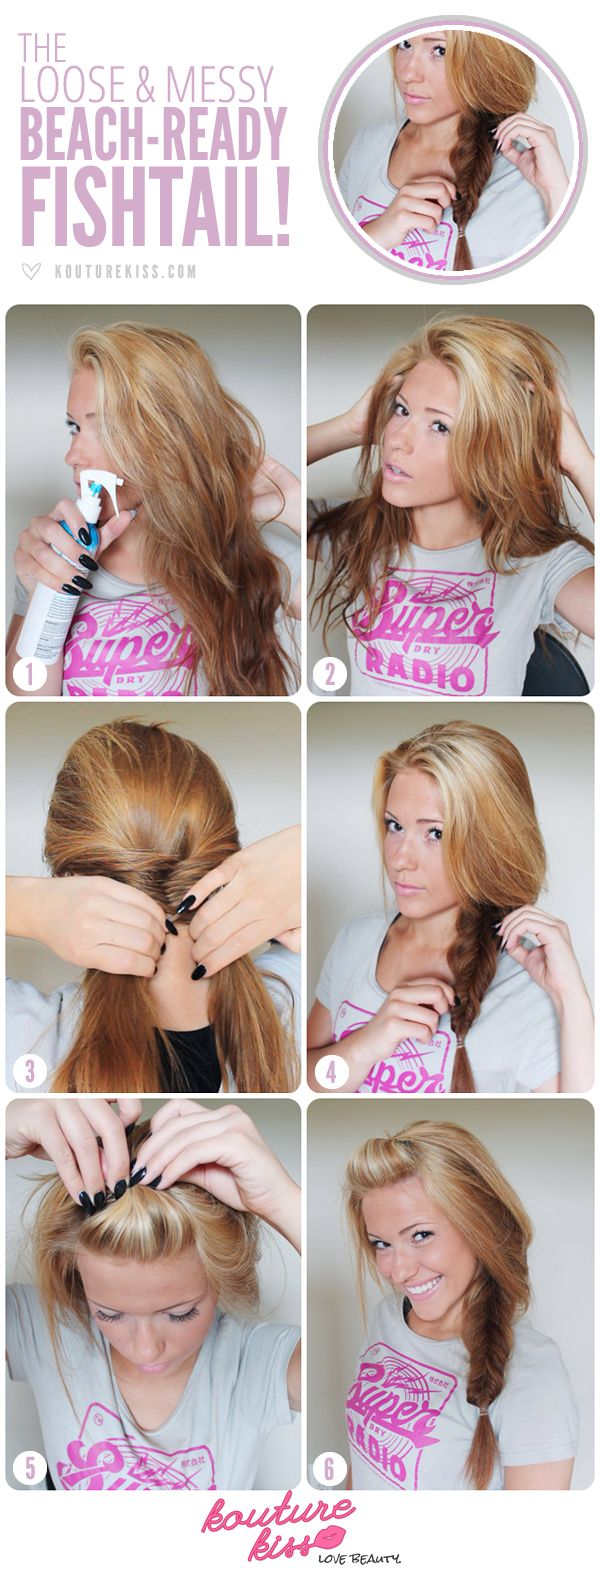 68 best hair images on pinterest | beauty tips, braided hair and